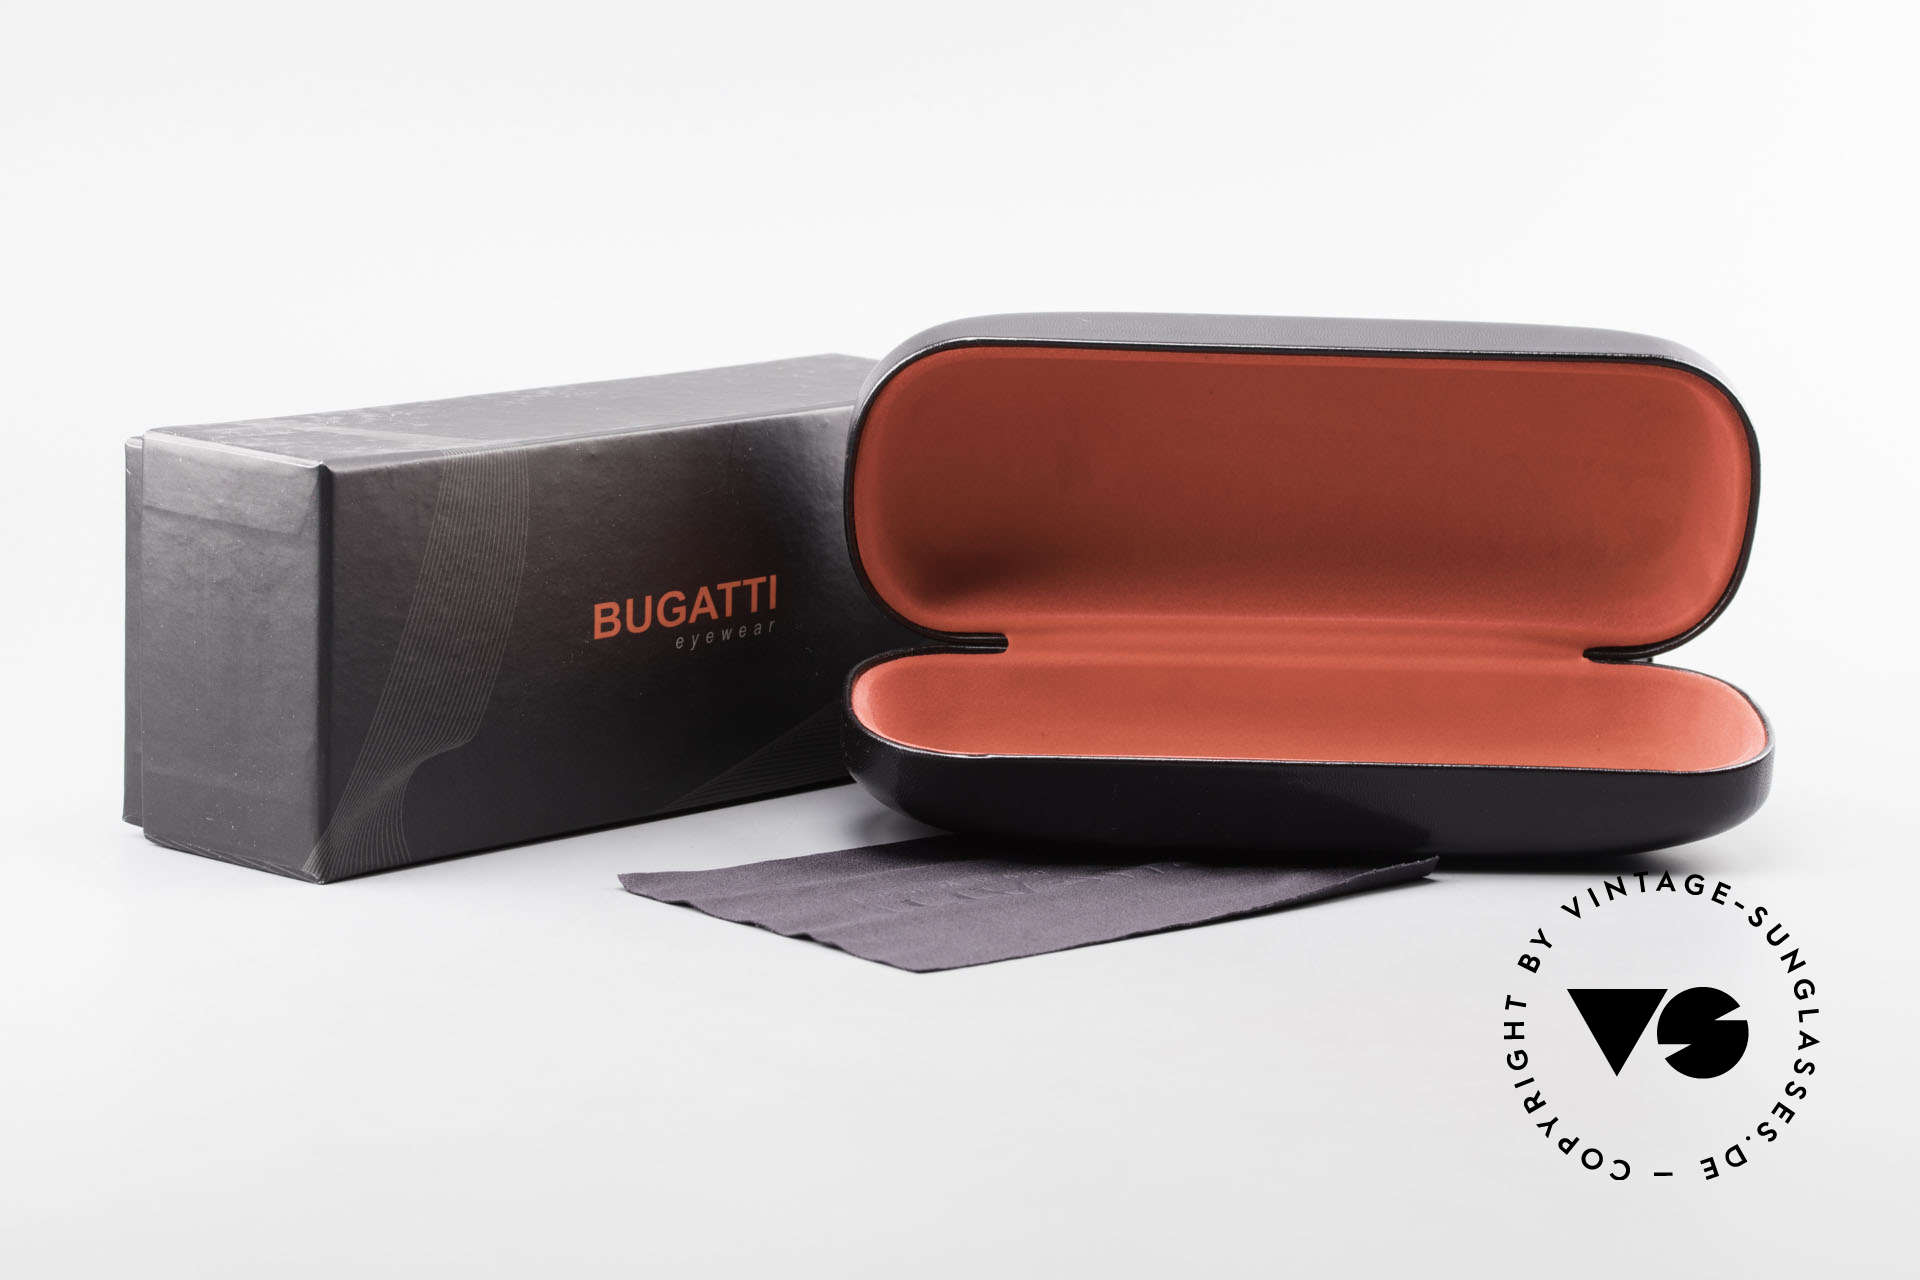 Bugatti 532 Classic Luxury Eyeglasses Men, Size: medium, Made for Men